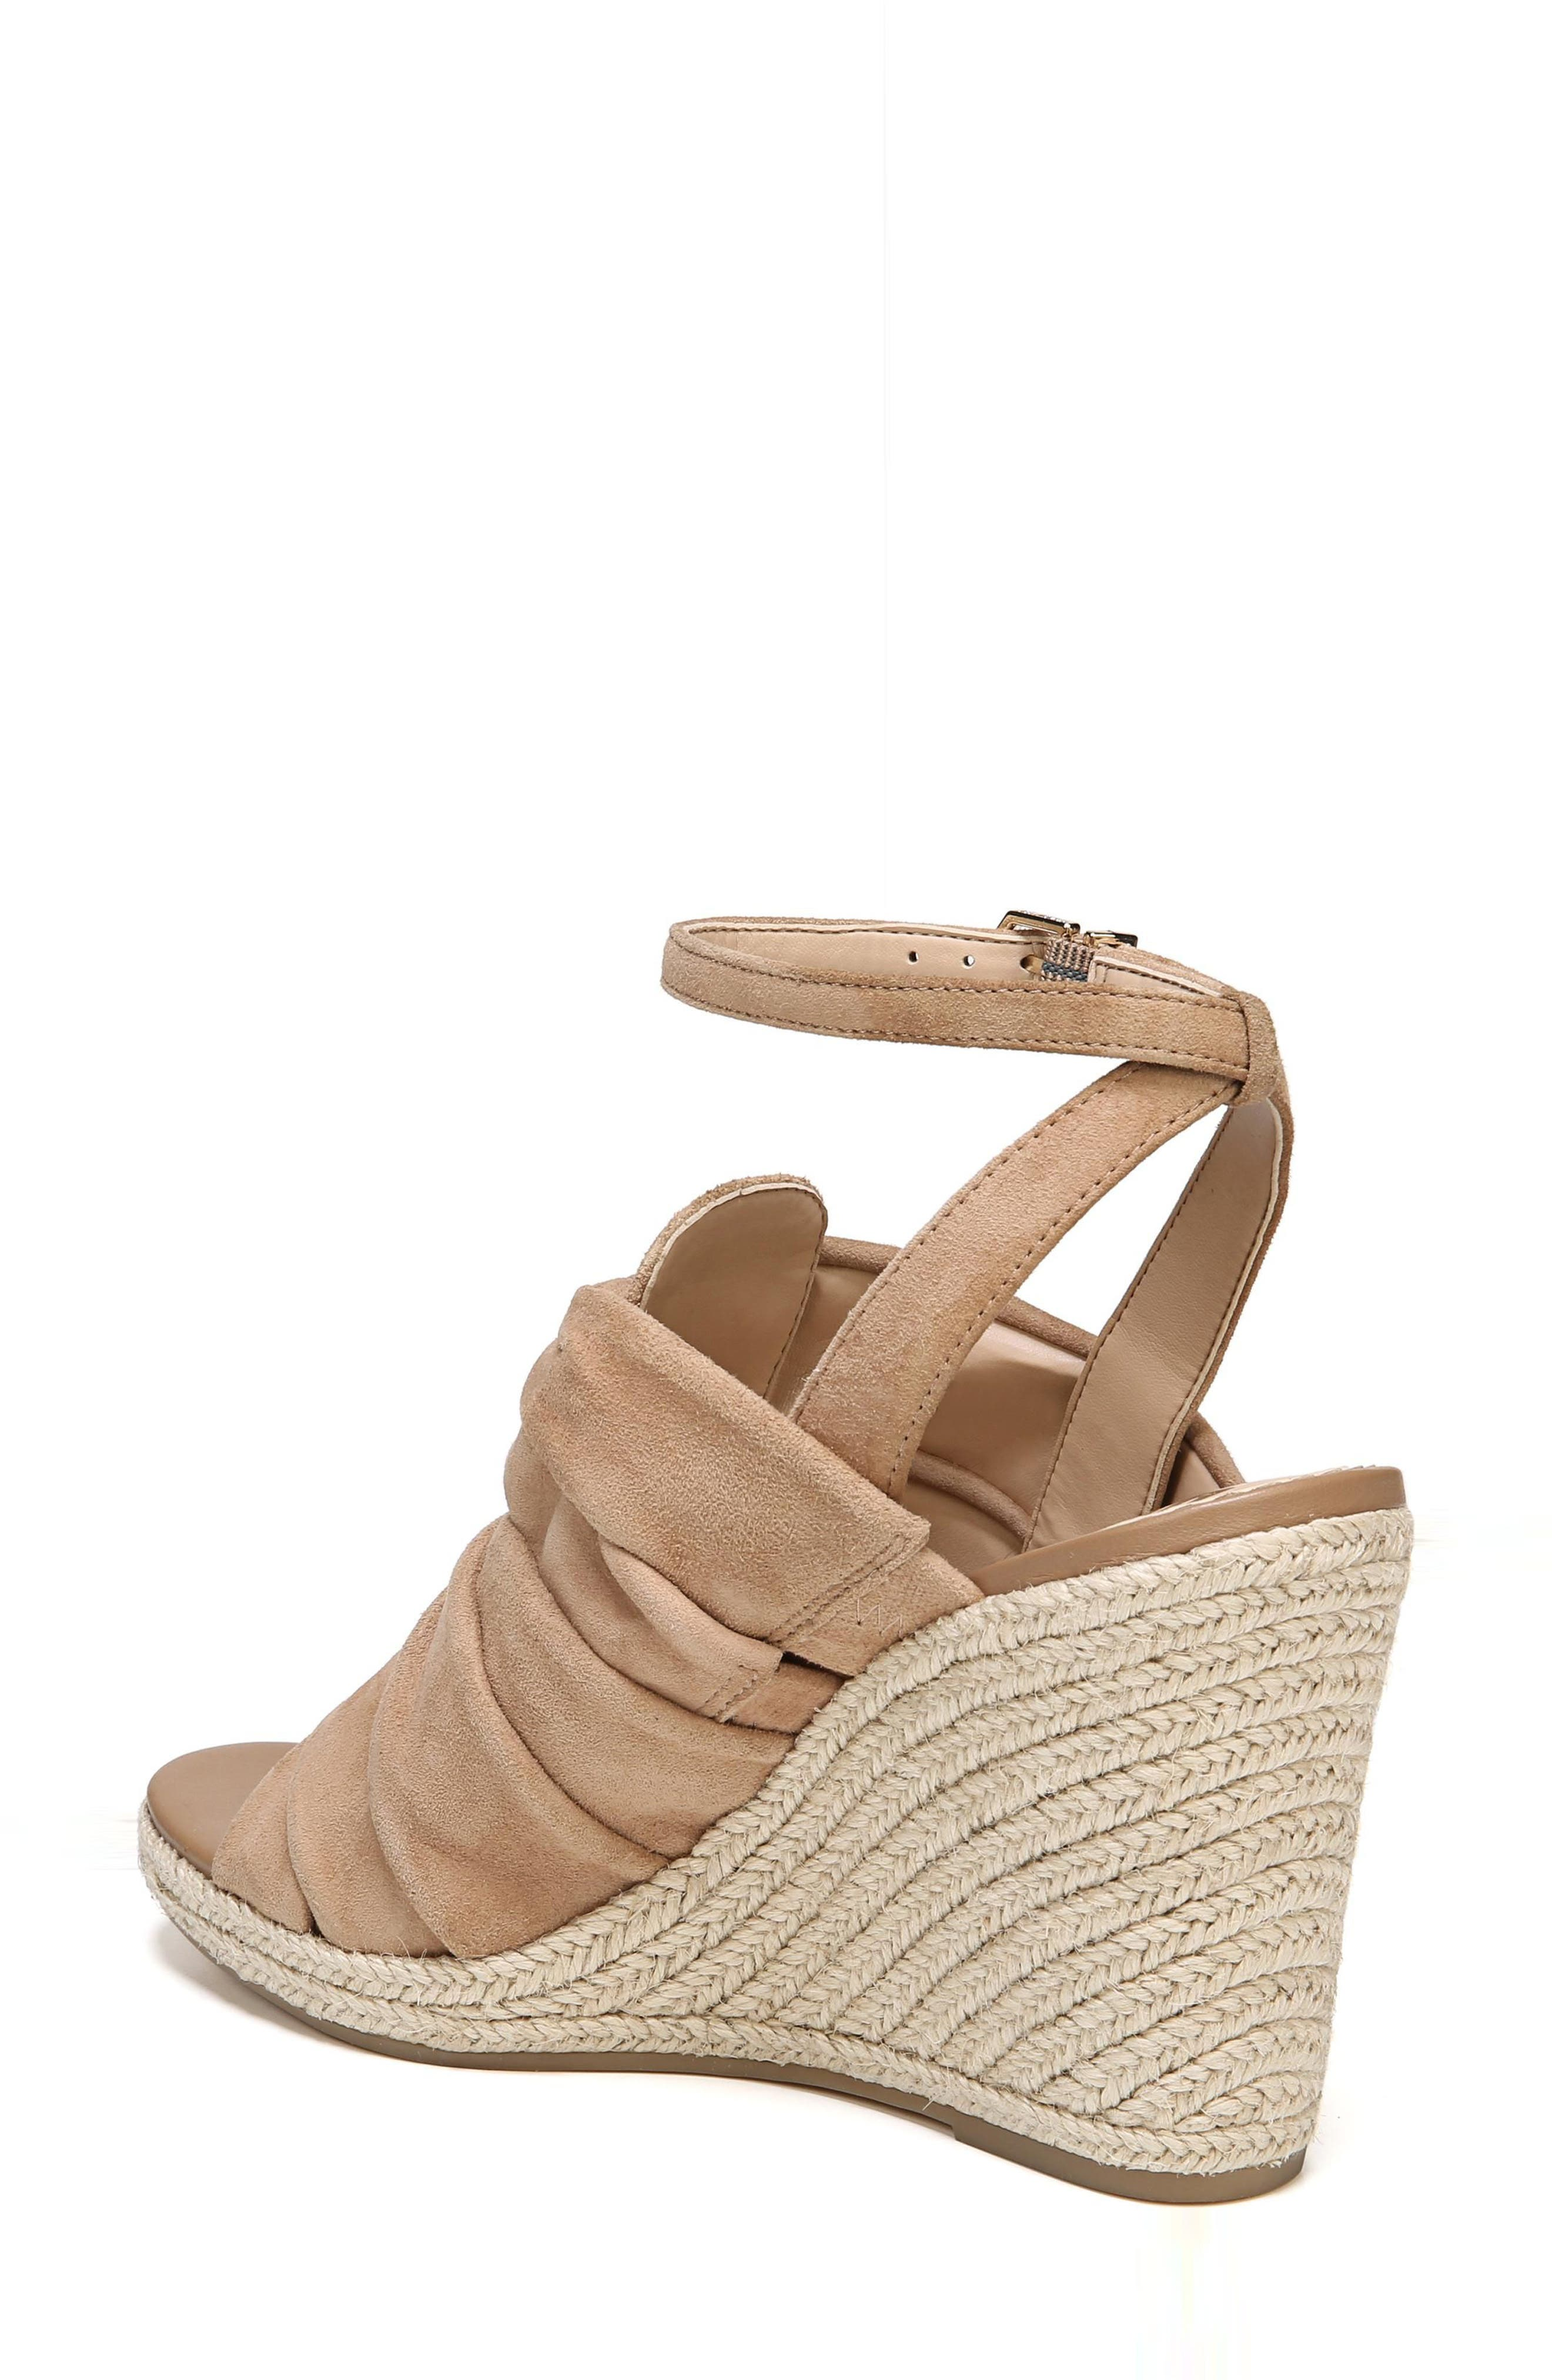 Awan Cinched Wedge Sandal,                             Alternate thumbnail 4, color,